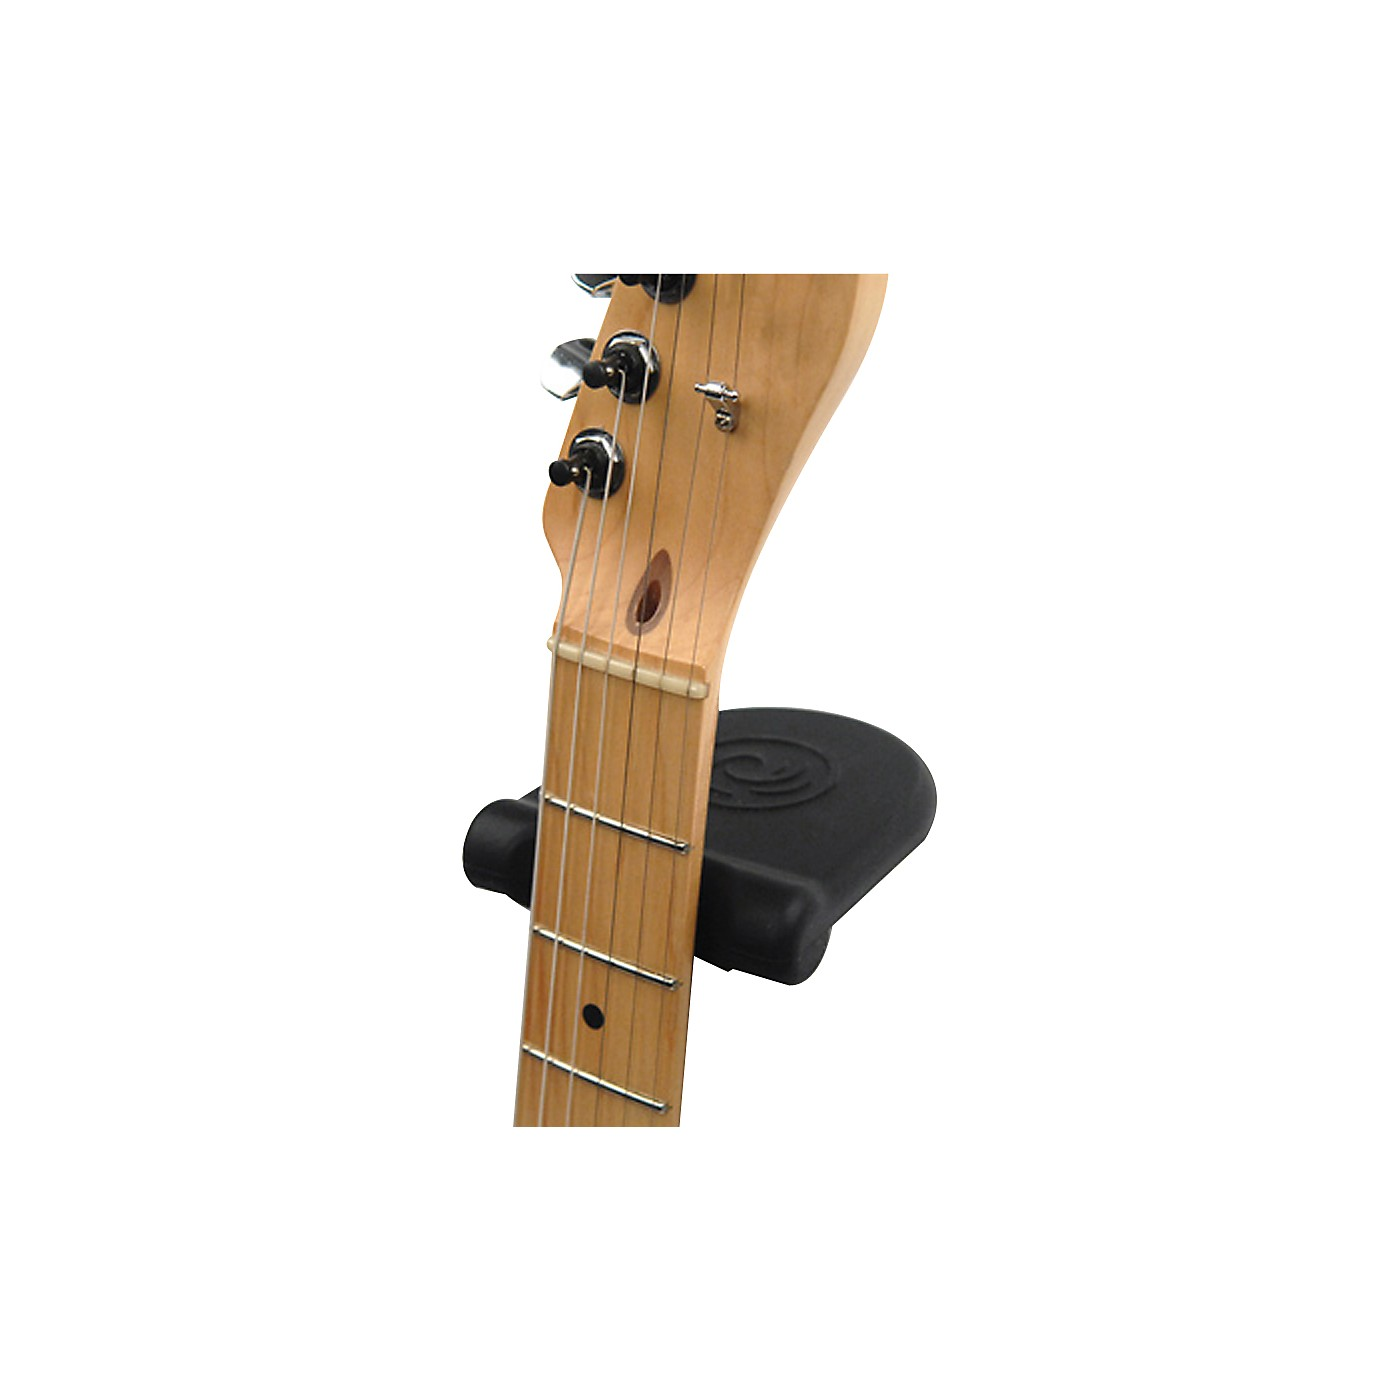 D'Addario Planet Waves PW-GR-01 Guitar Rest thumbnail